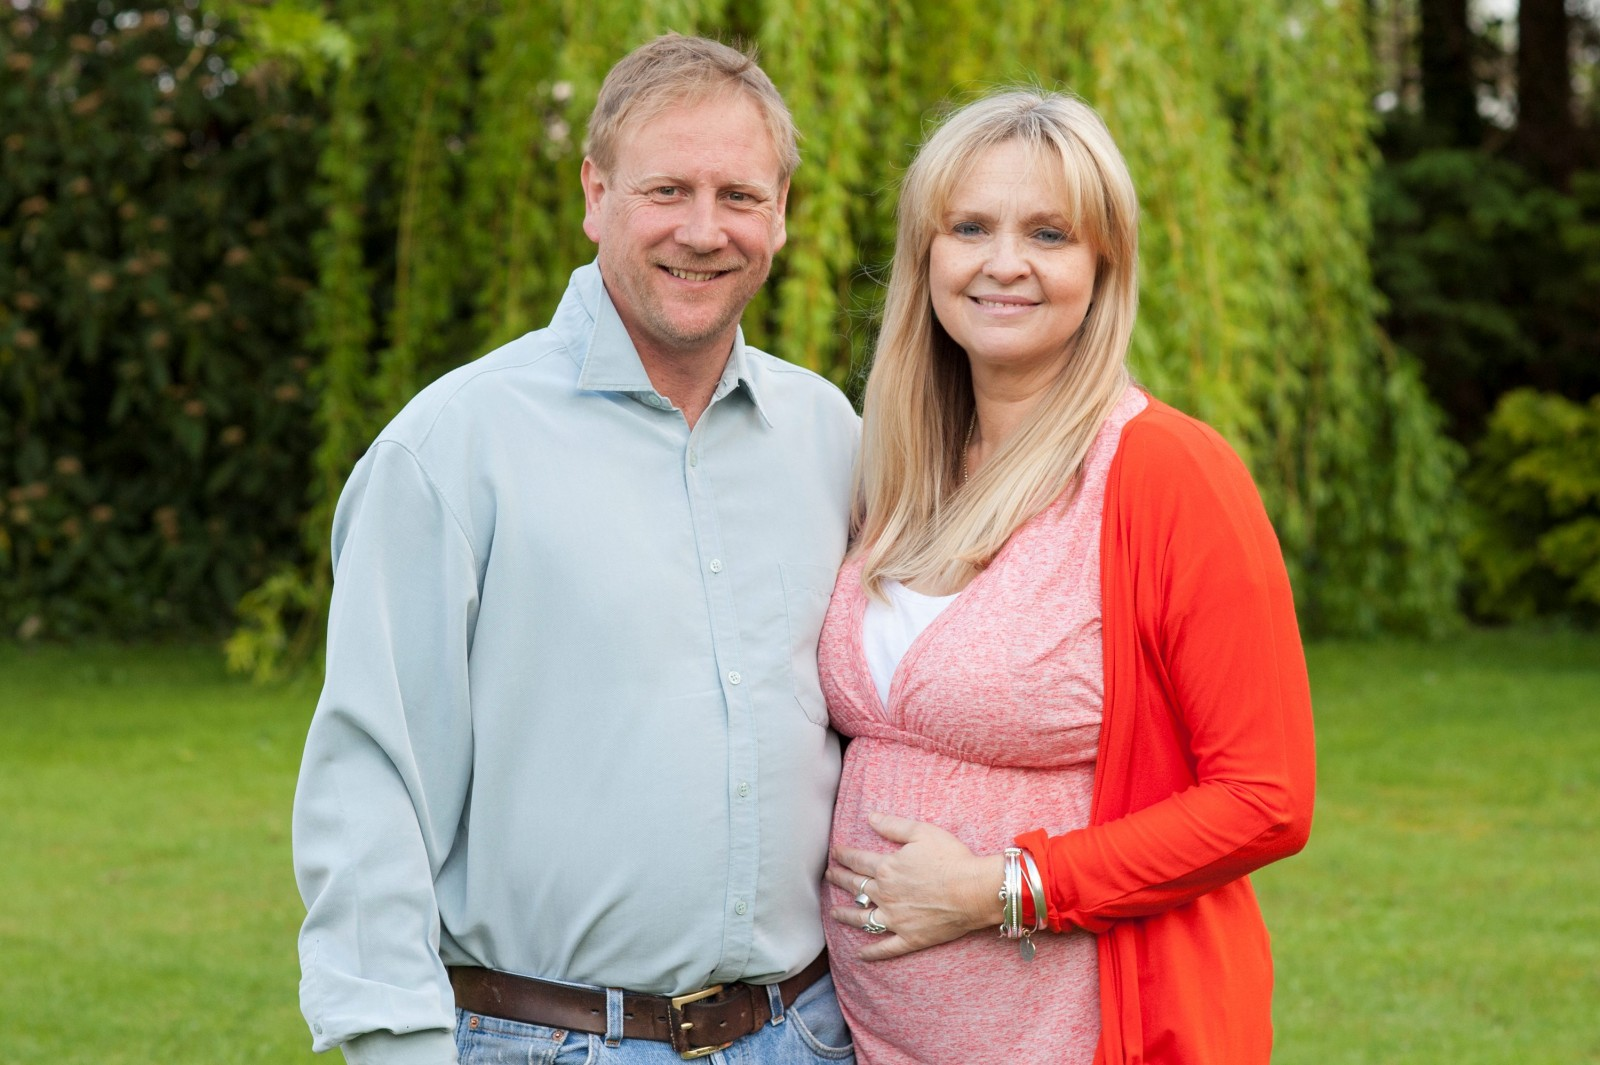 Couple with a 'sticky sperm' problem spent £30k on failed IVF before conceiving naturally